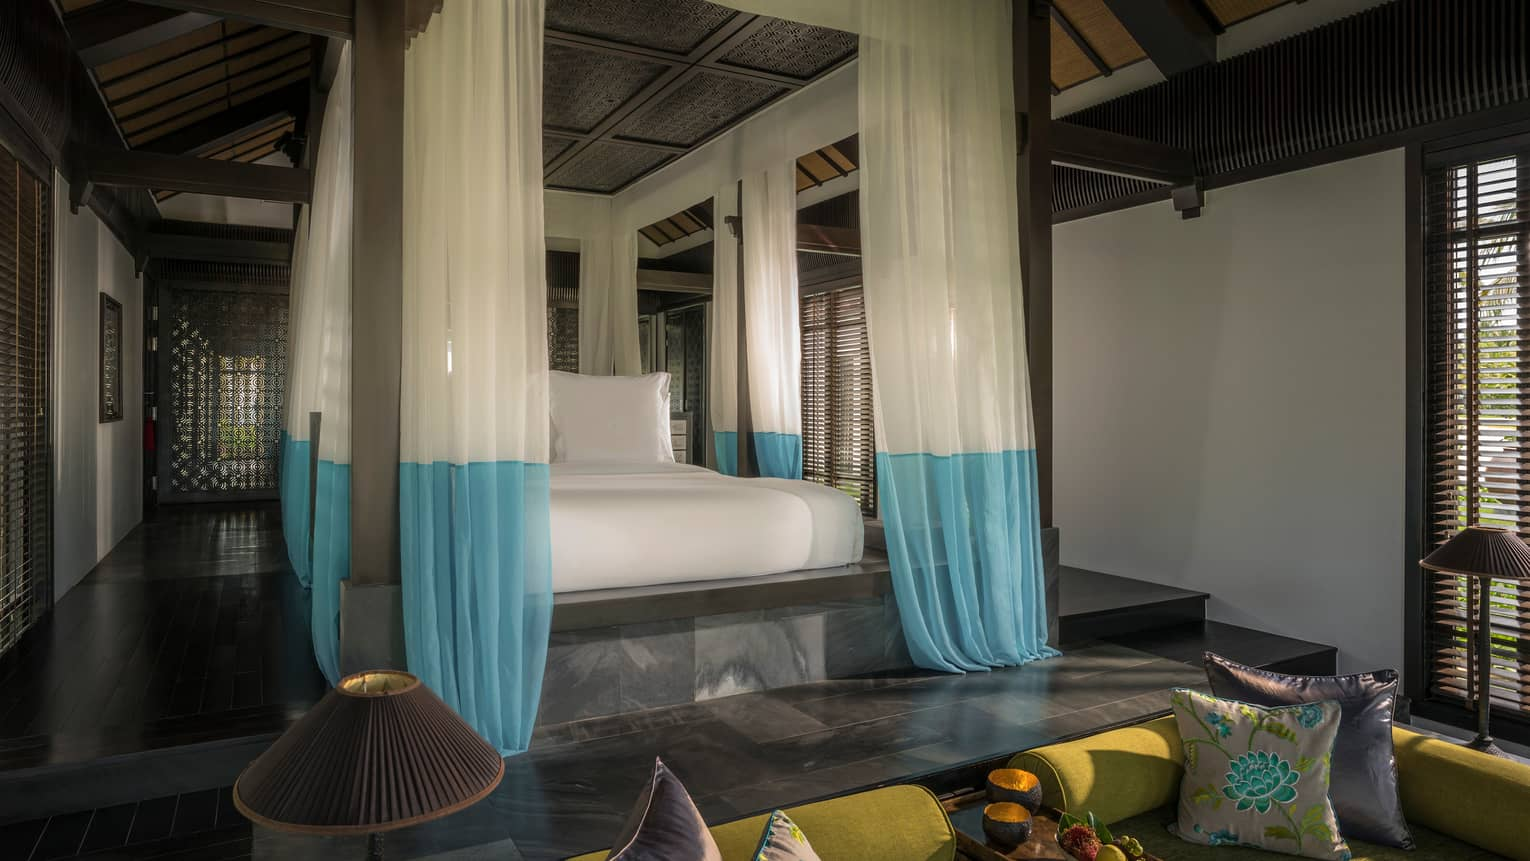 Villa raised platform poster bed with white-and-blue gossamer drape canopy